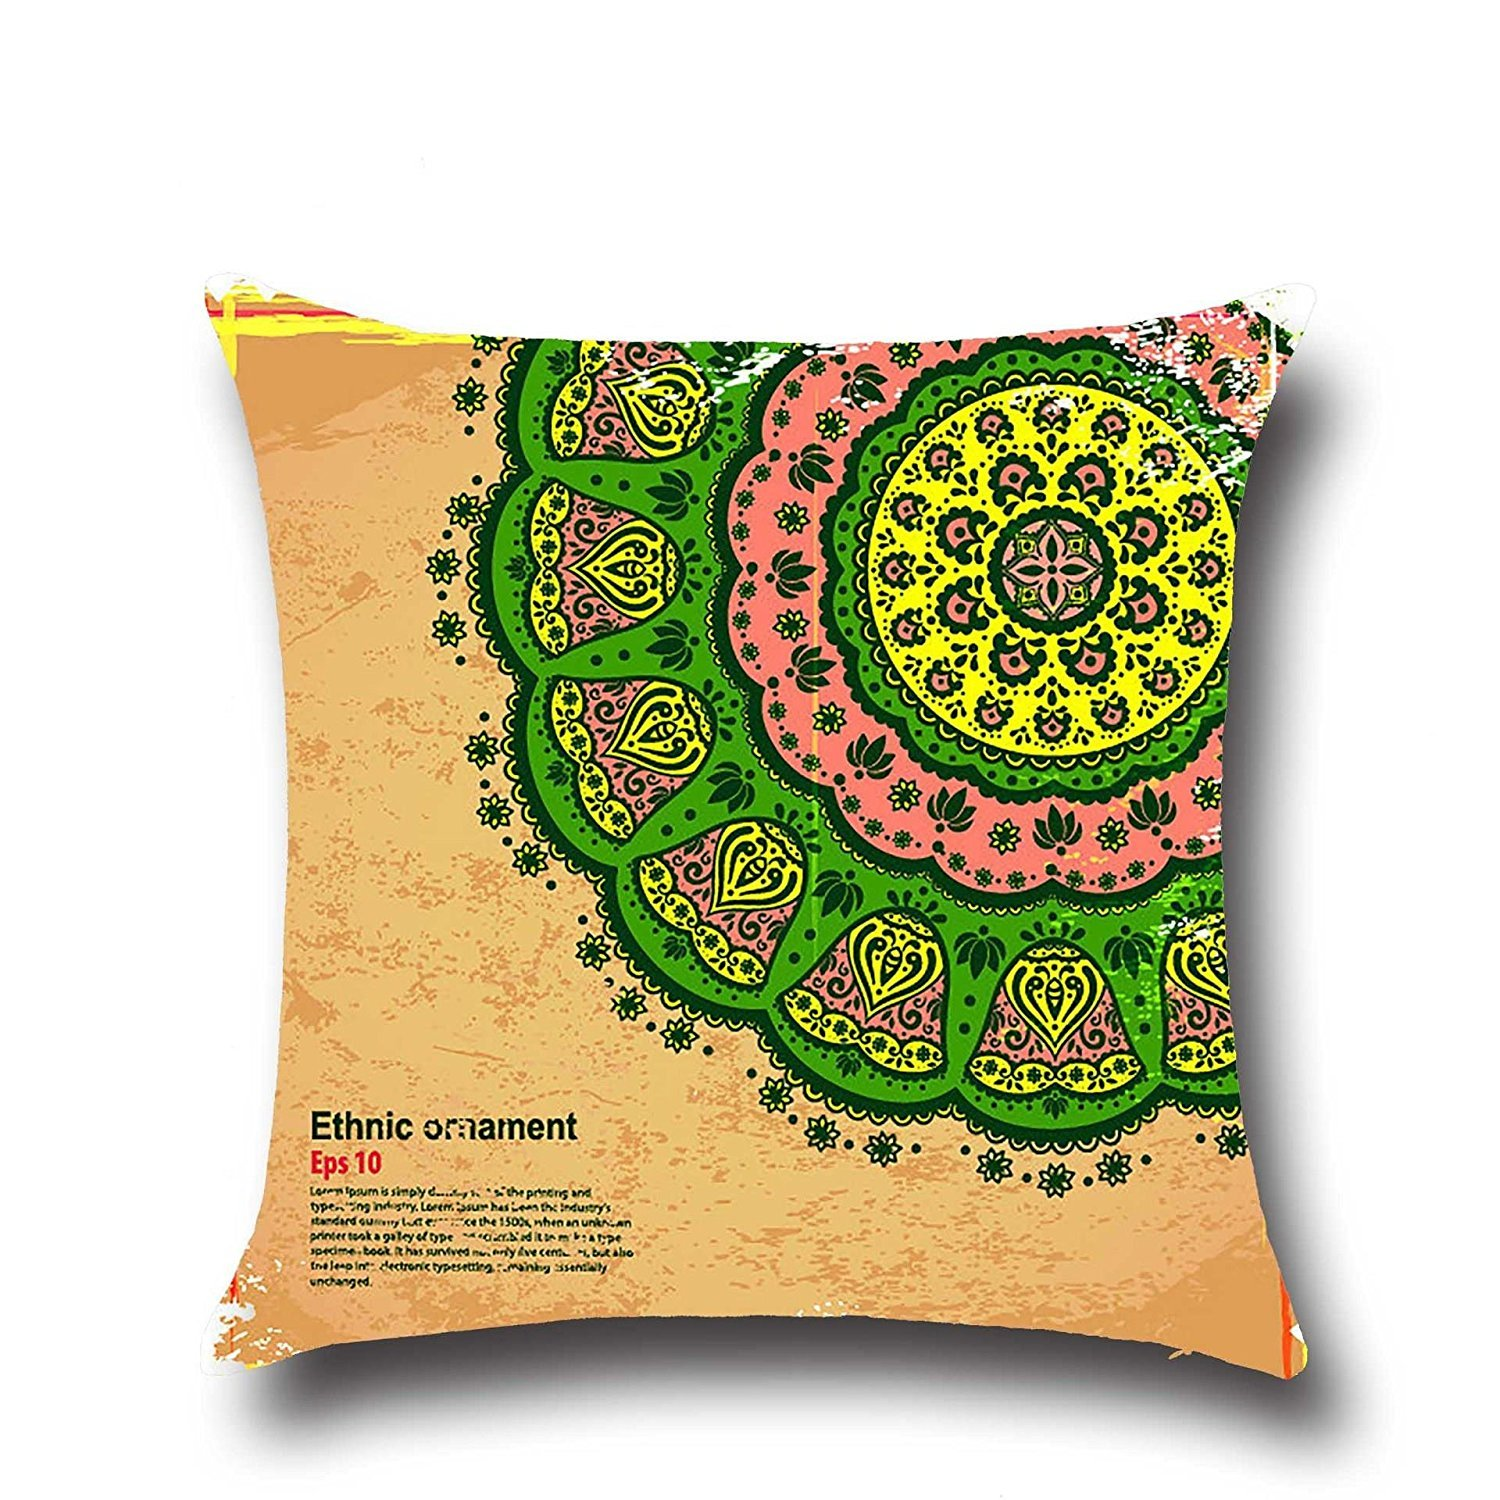 HOMEE Stylish and Fantastic Sunset Shanshui Flower-Pattern Cambodia and Thailand India Southeast Asia Style ,4545Cm,01 Pillow,03,4545cm